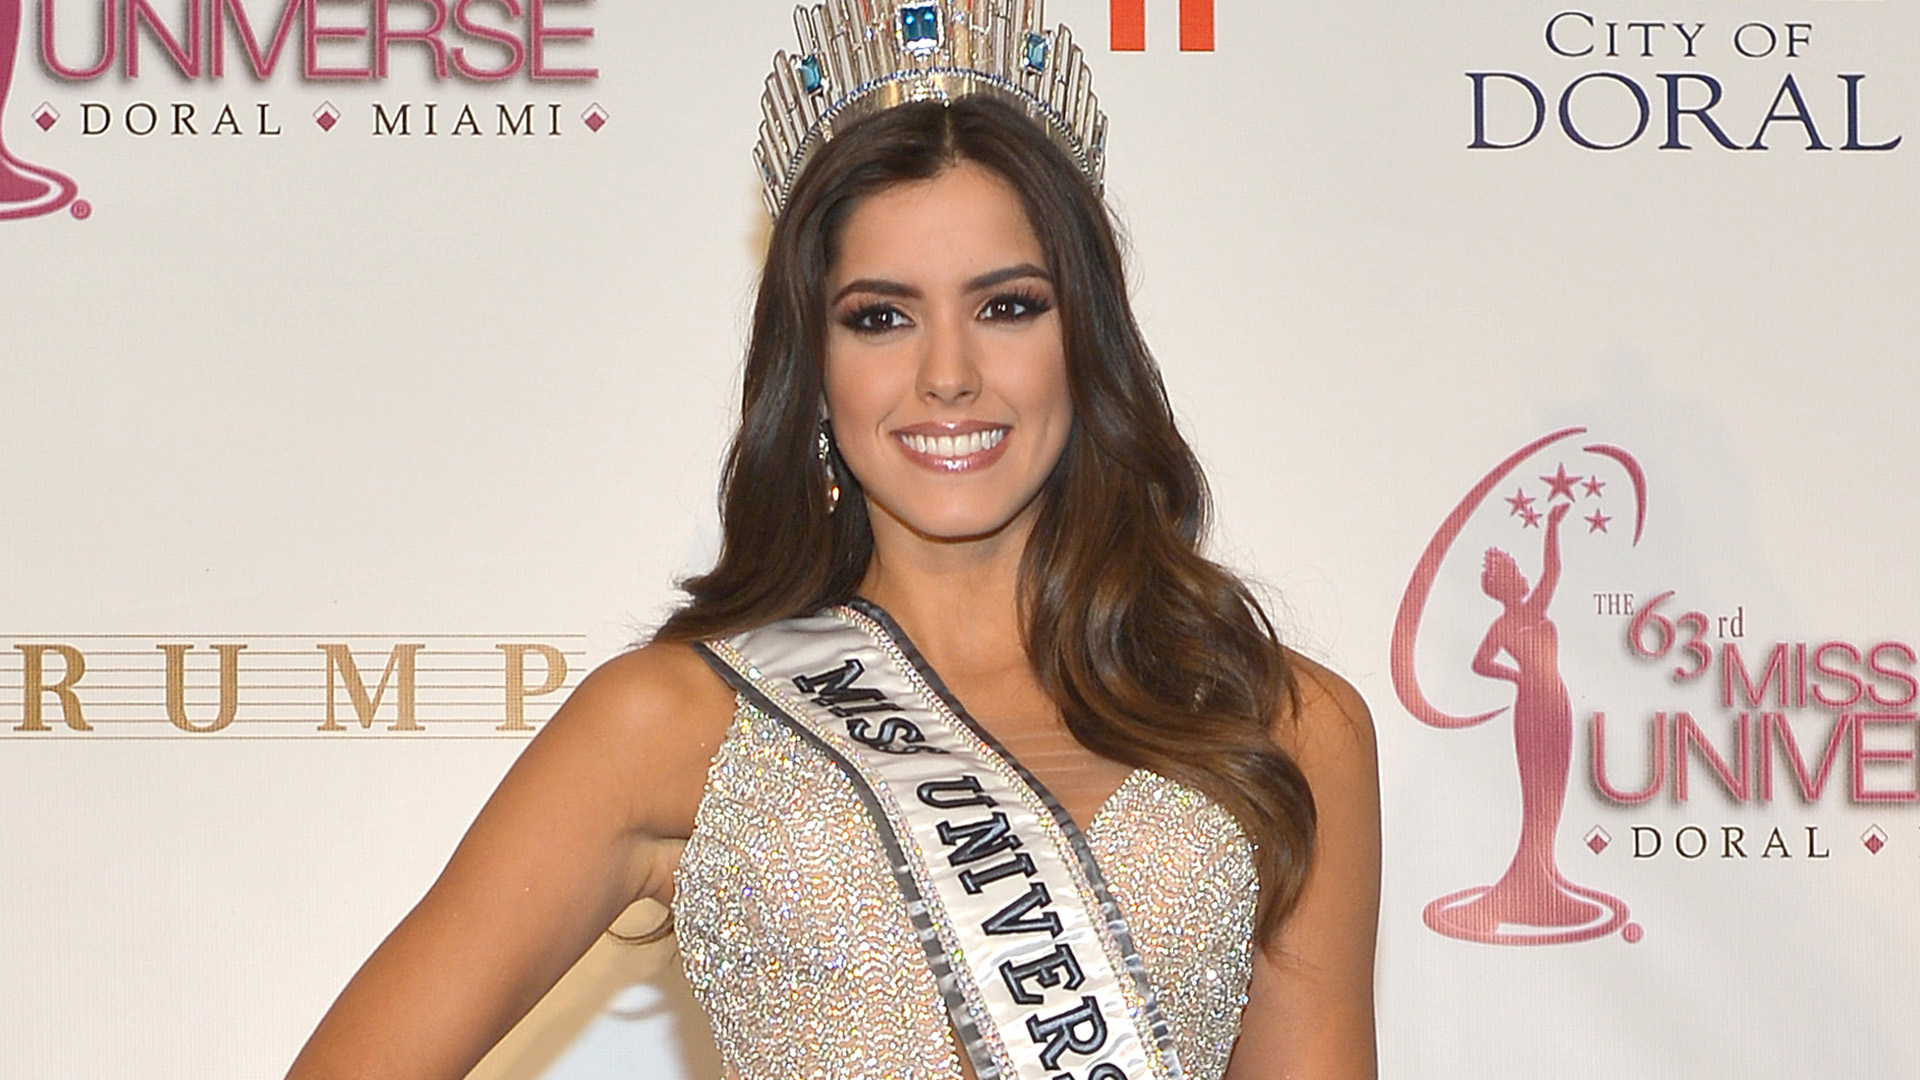 The 63rd Annual Miss Universe Pageant - Winner Press Conference